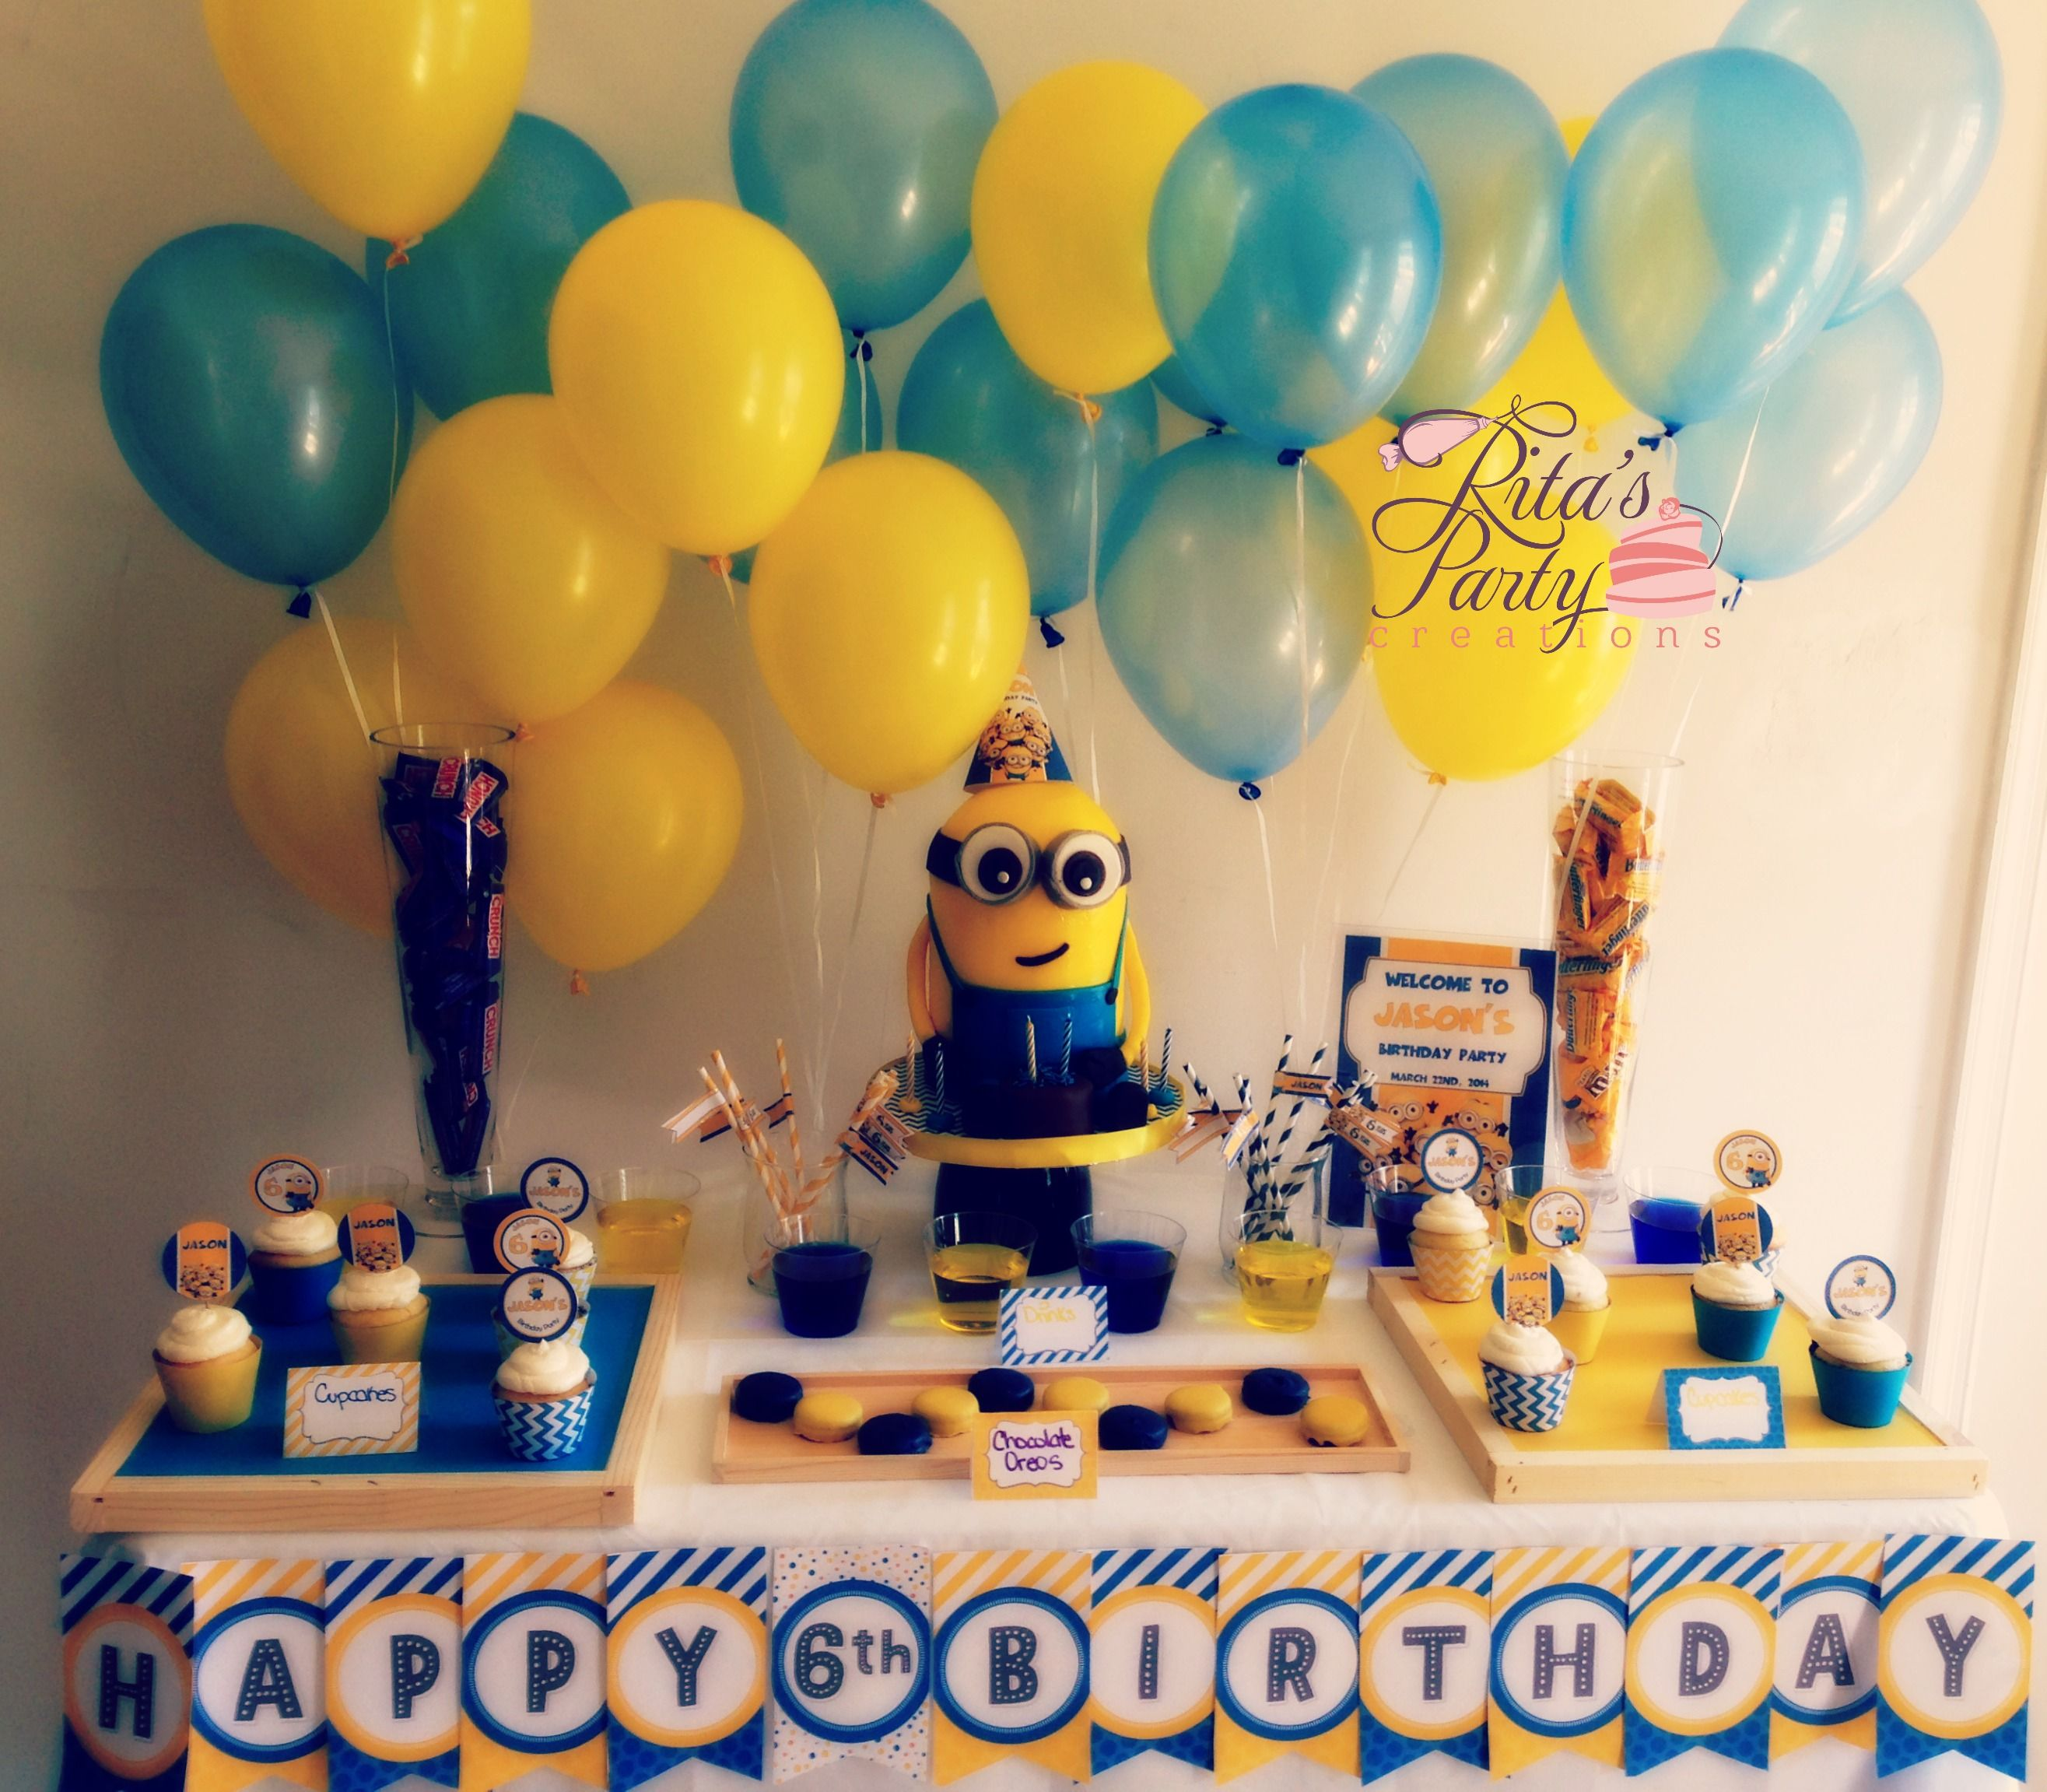 Despicable Me Party Table For A 6 Year Old Boy Birthday Cake In Richmond Virginia Save 20 Off Any Order With The Savvy Saver App Available On